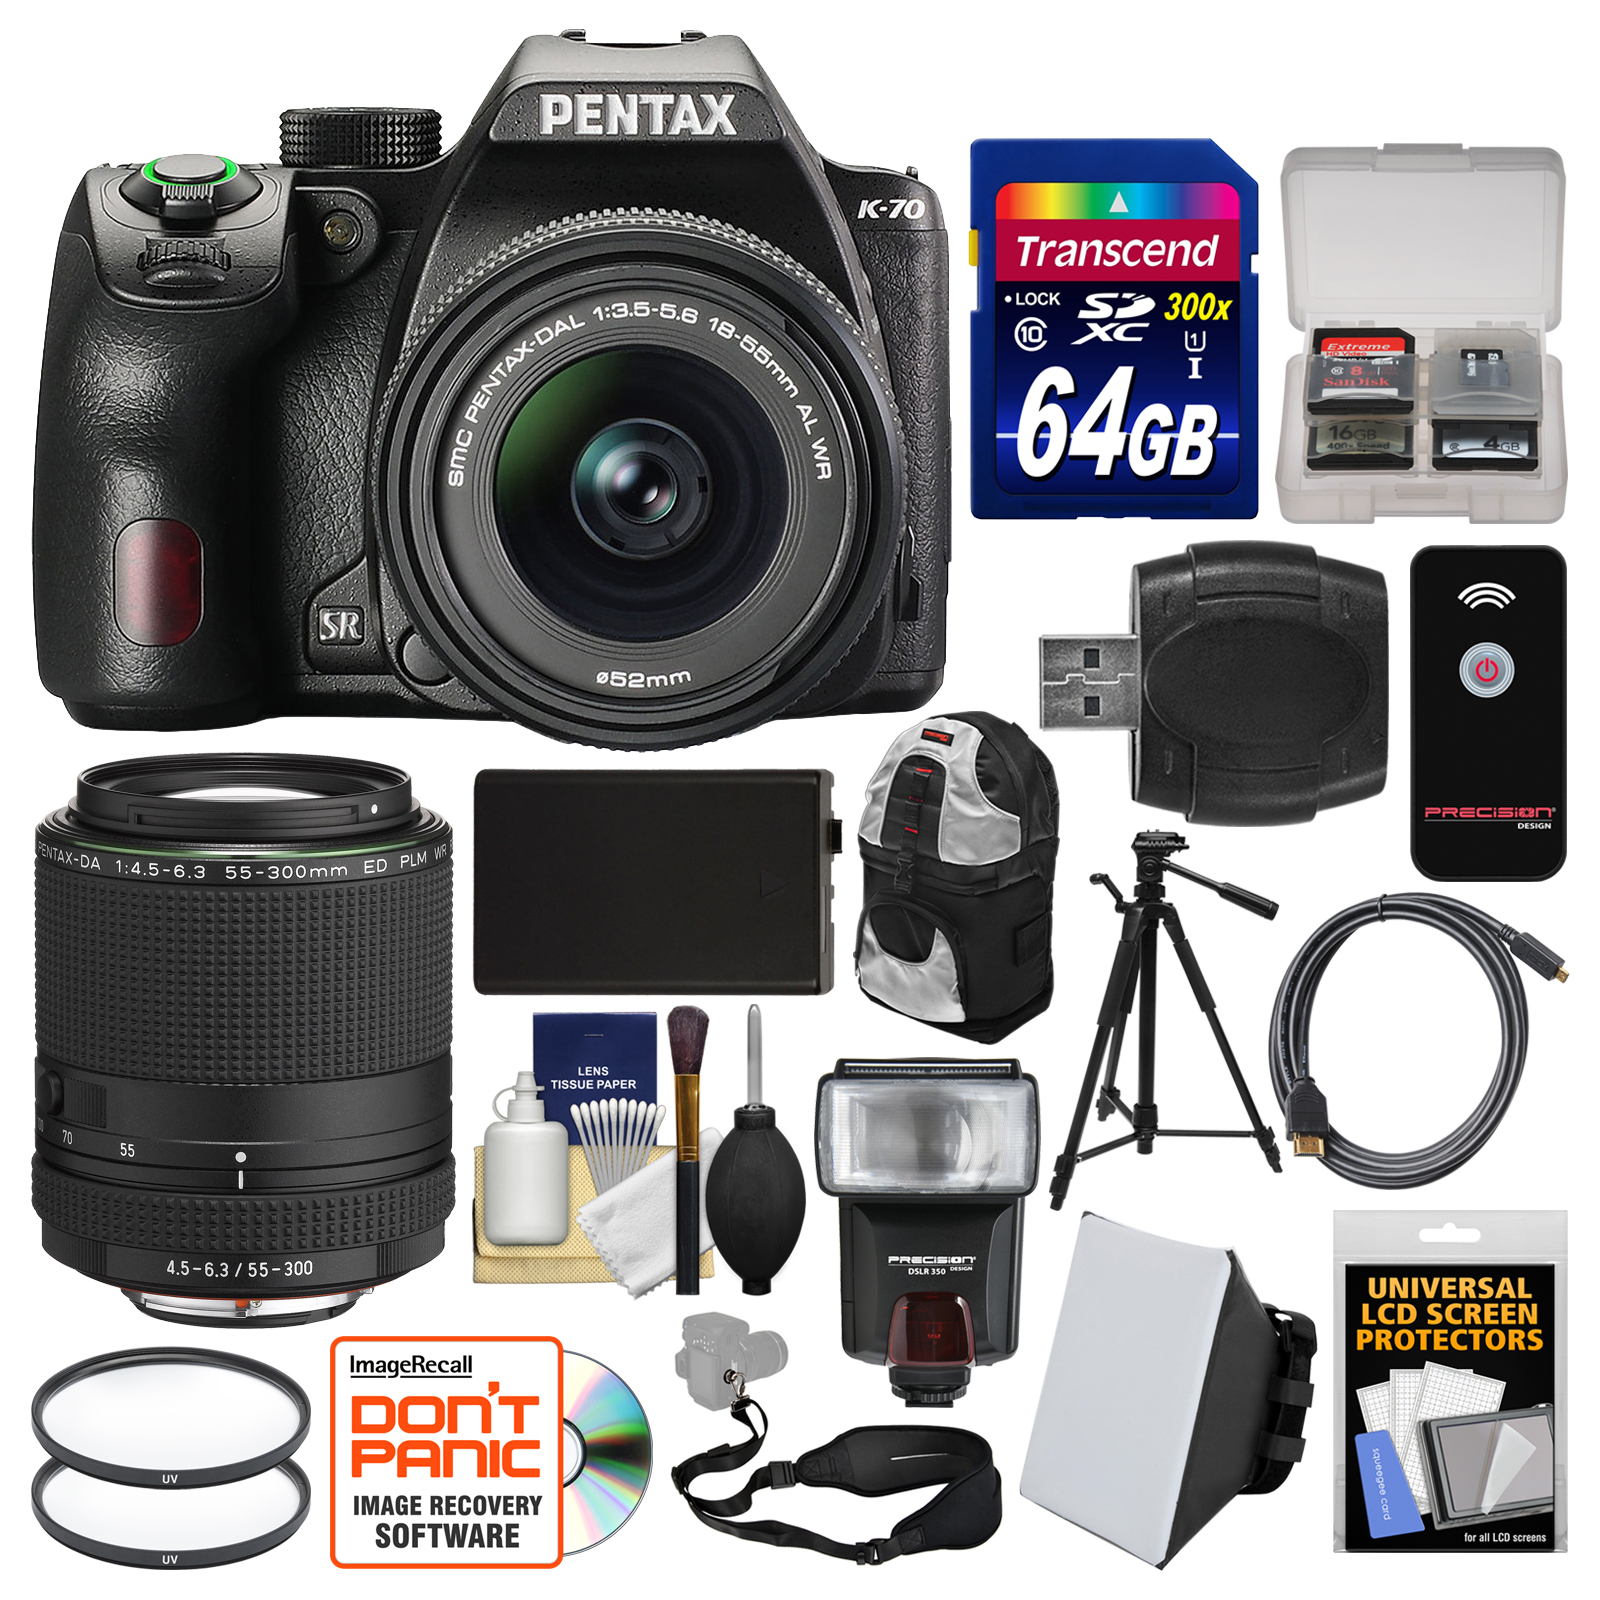 Pentax K-70 All Weather Wi-Fi Digital SLR Camera with DA 18-55mm AL WR & 55-300mm Lens + 64GB Card + Backpack... by Pentax